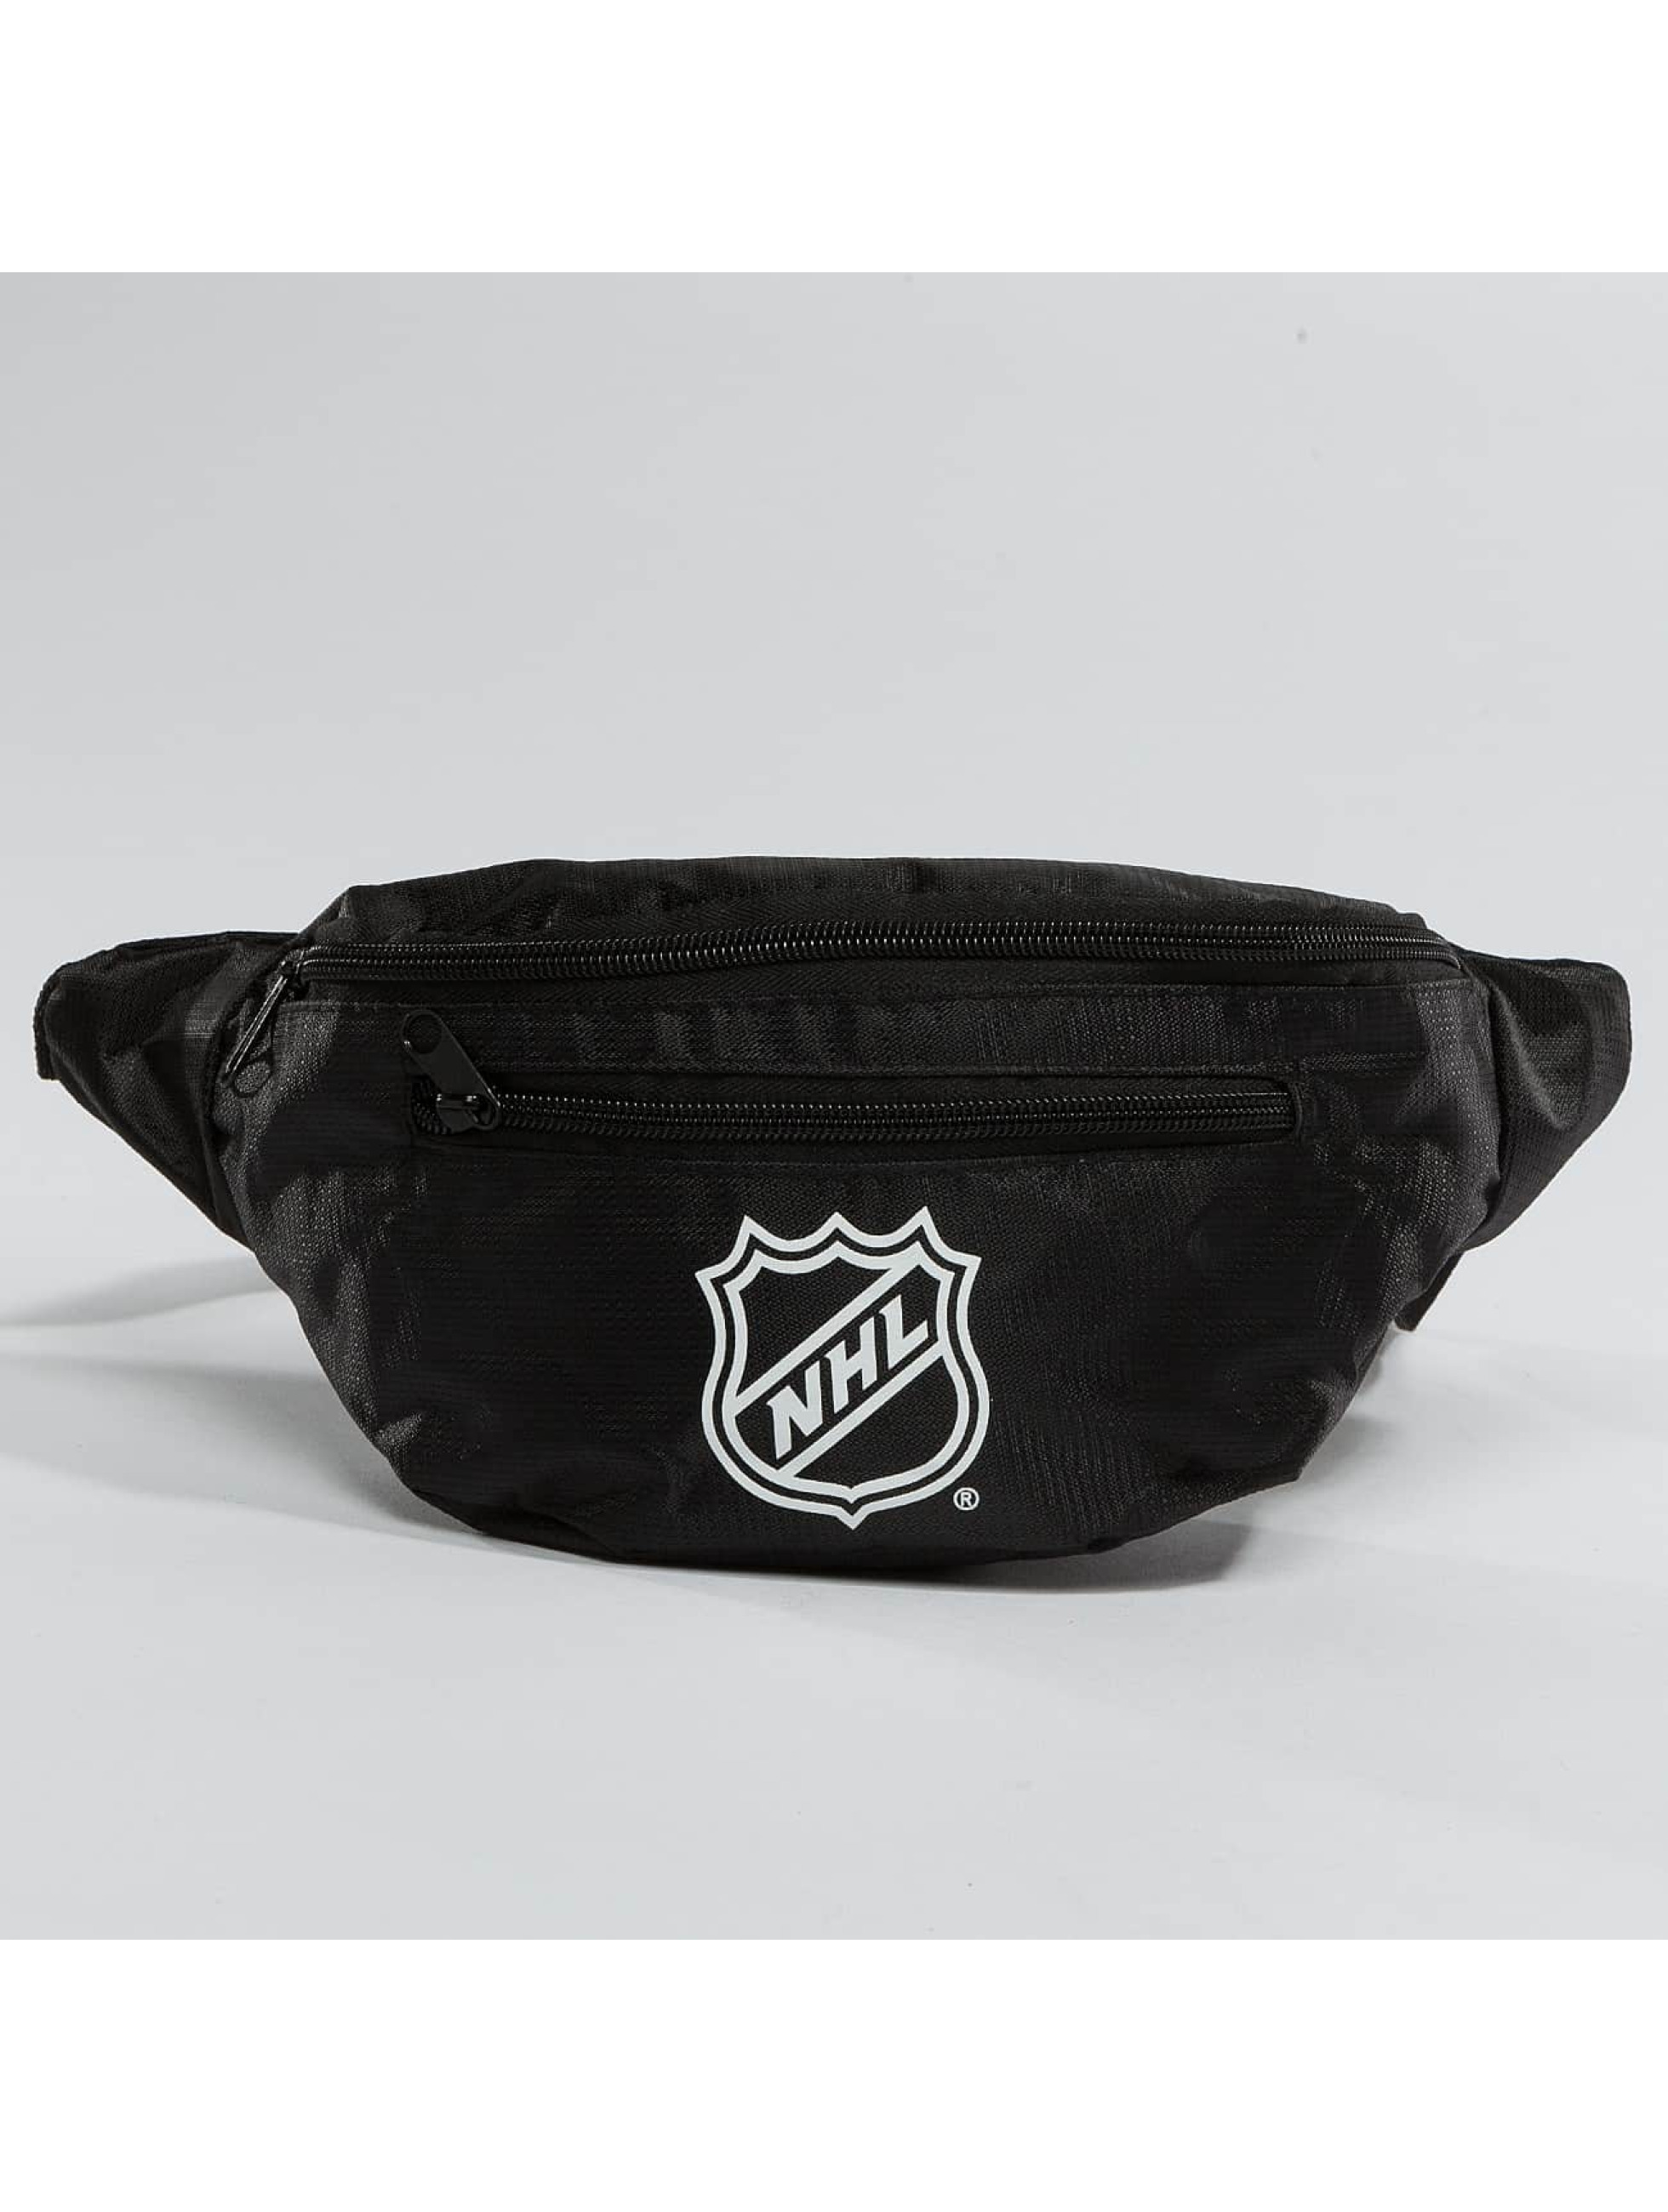 Forever Collectibles Torby NHL Logo czarny